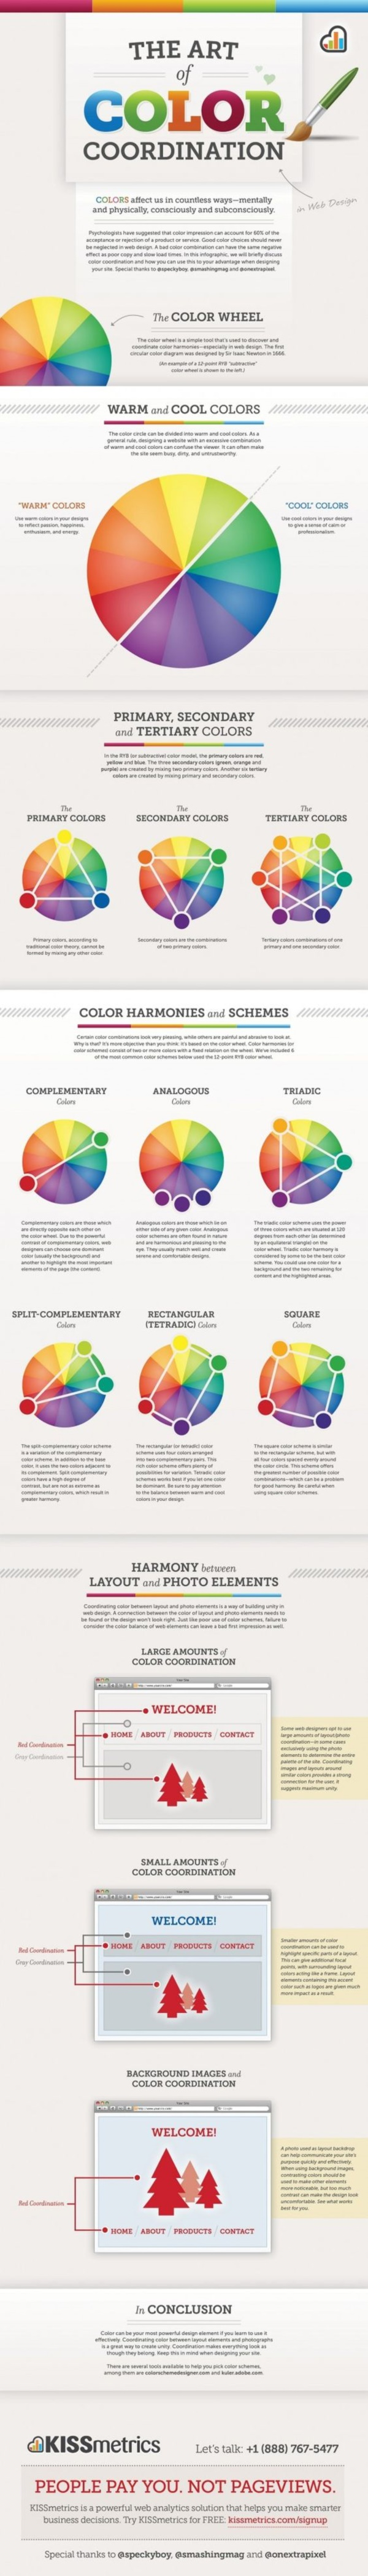 practically-useful-color-mixing-charts0051